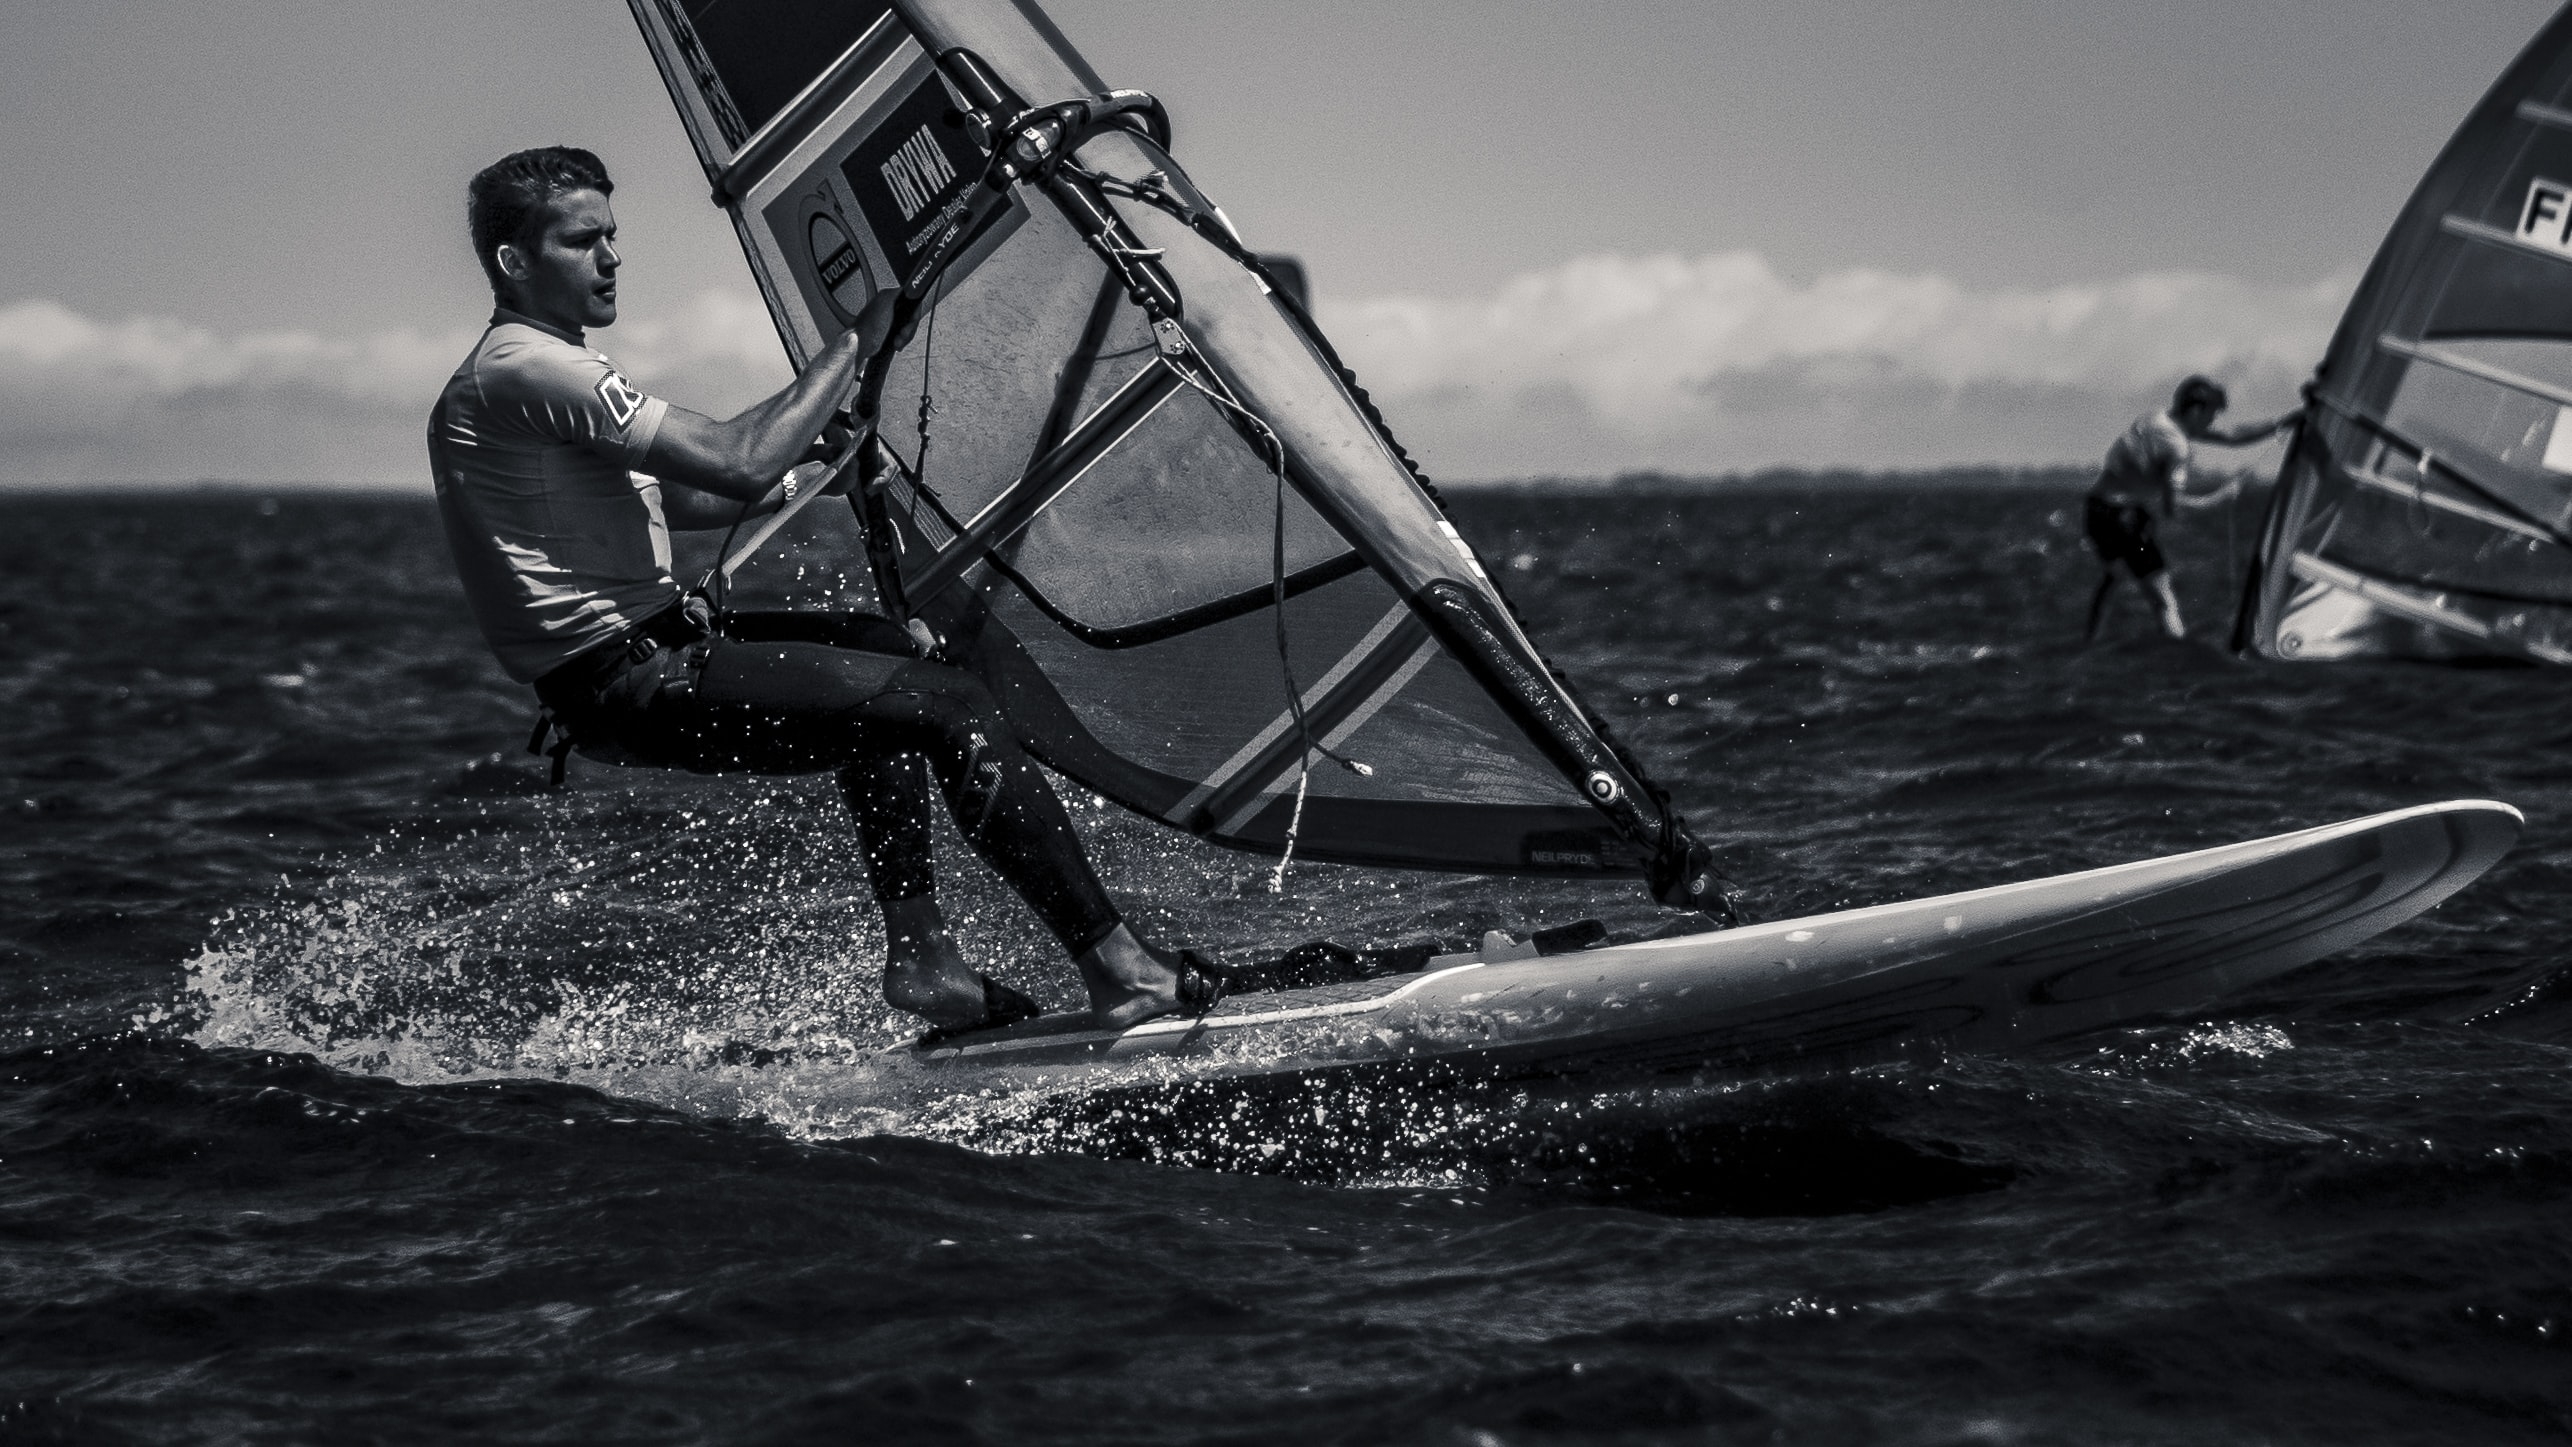 man riding surfboard with sail